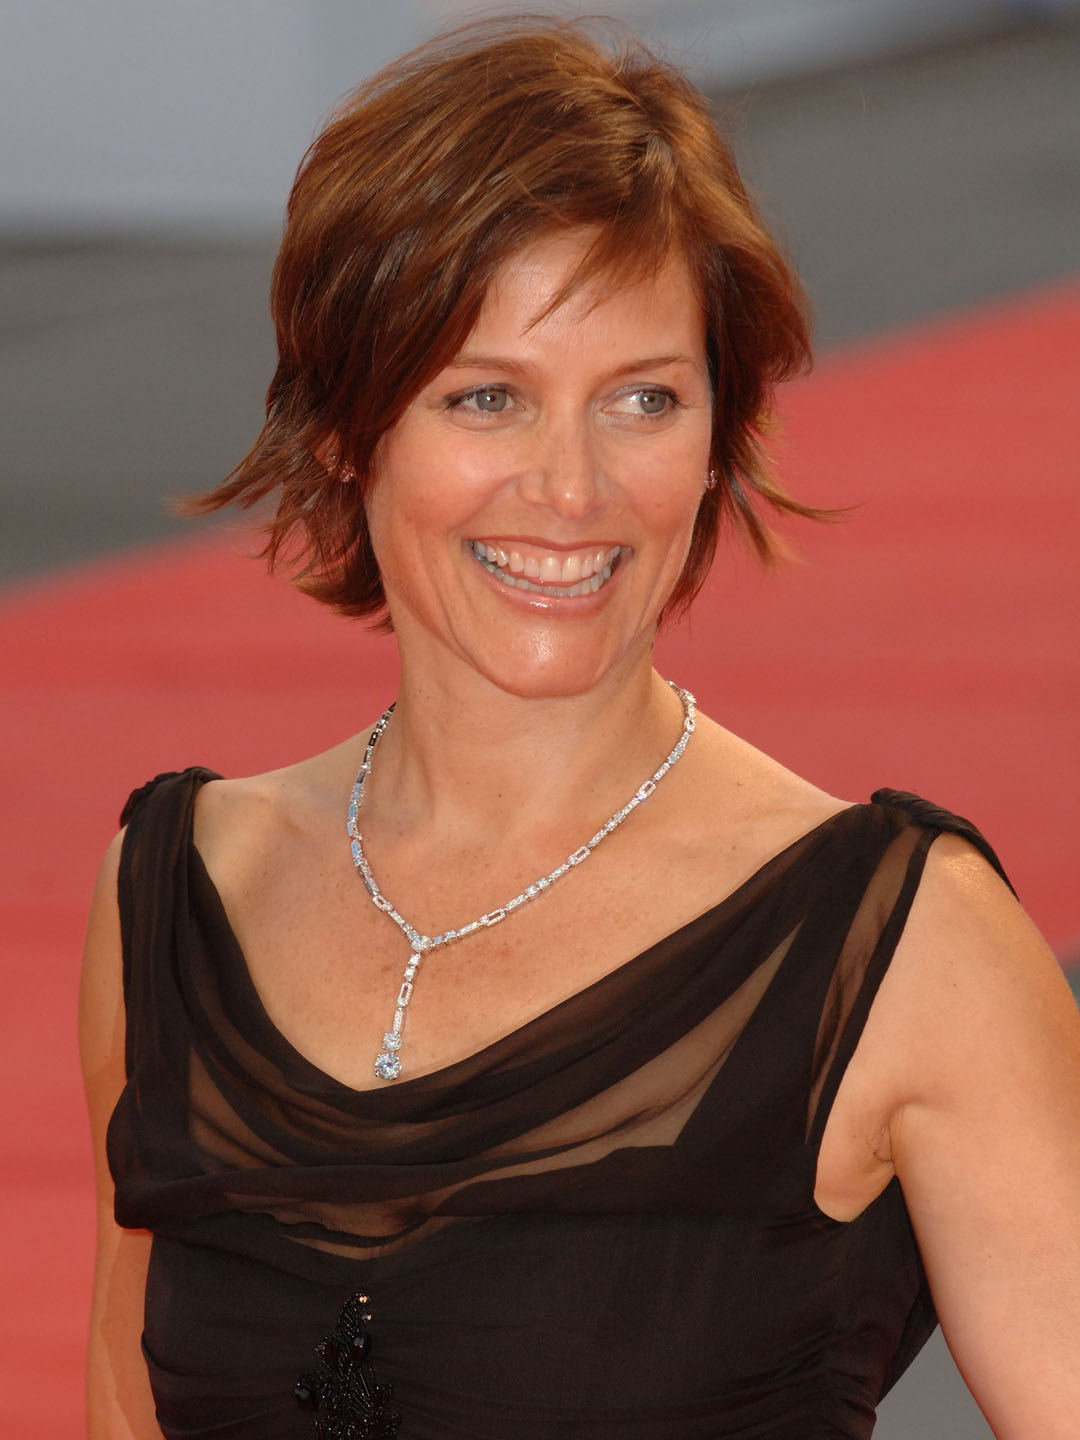 Carey Lowell Height - CelebsHeight.org